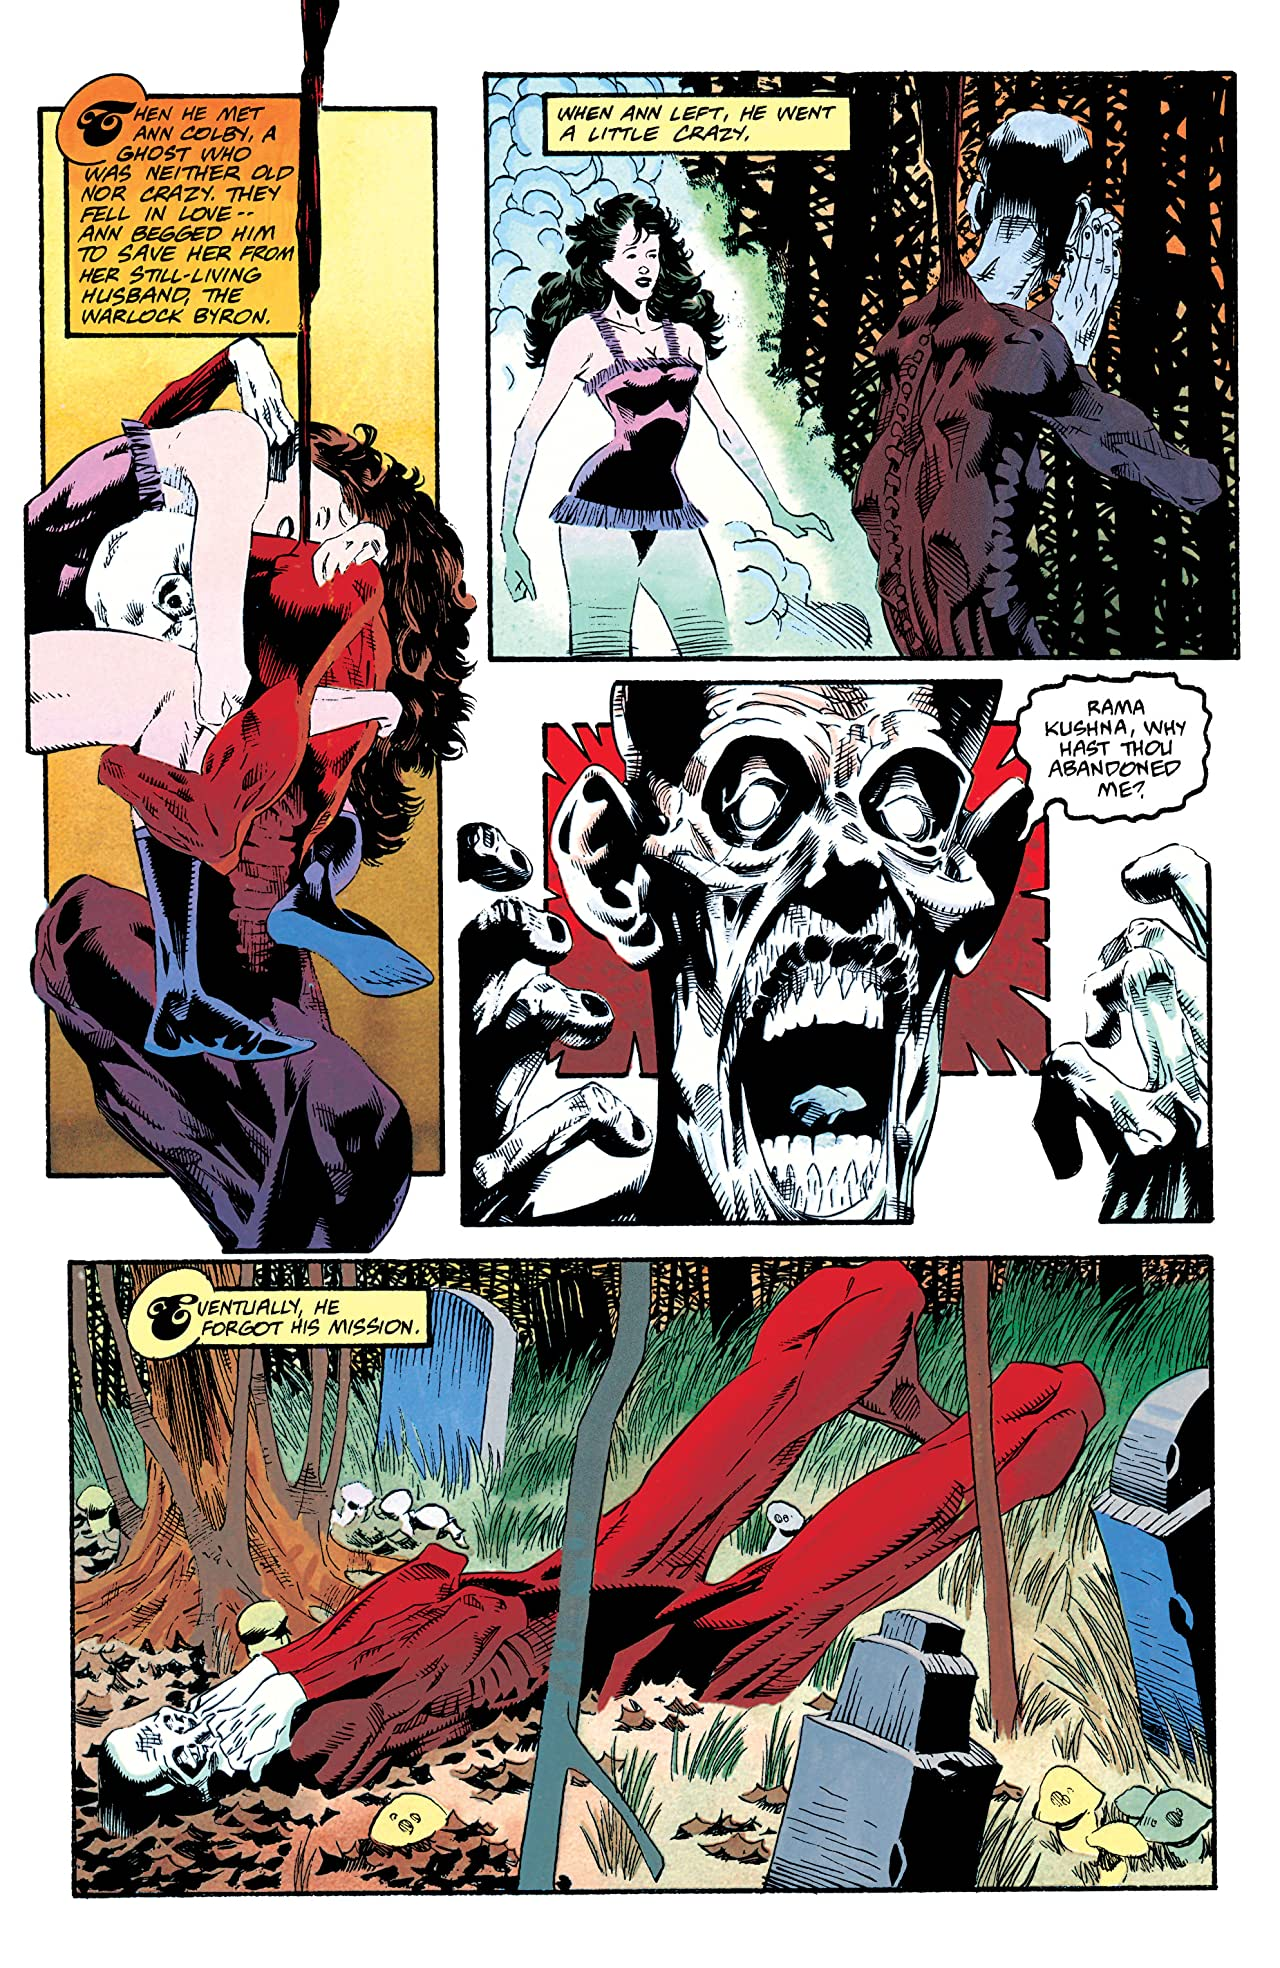 Deadman: Exorcism (1992) #1